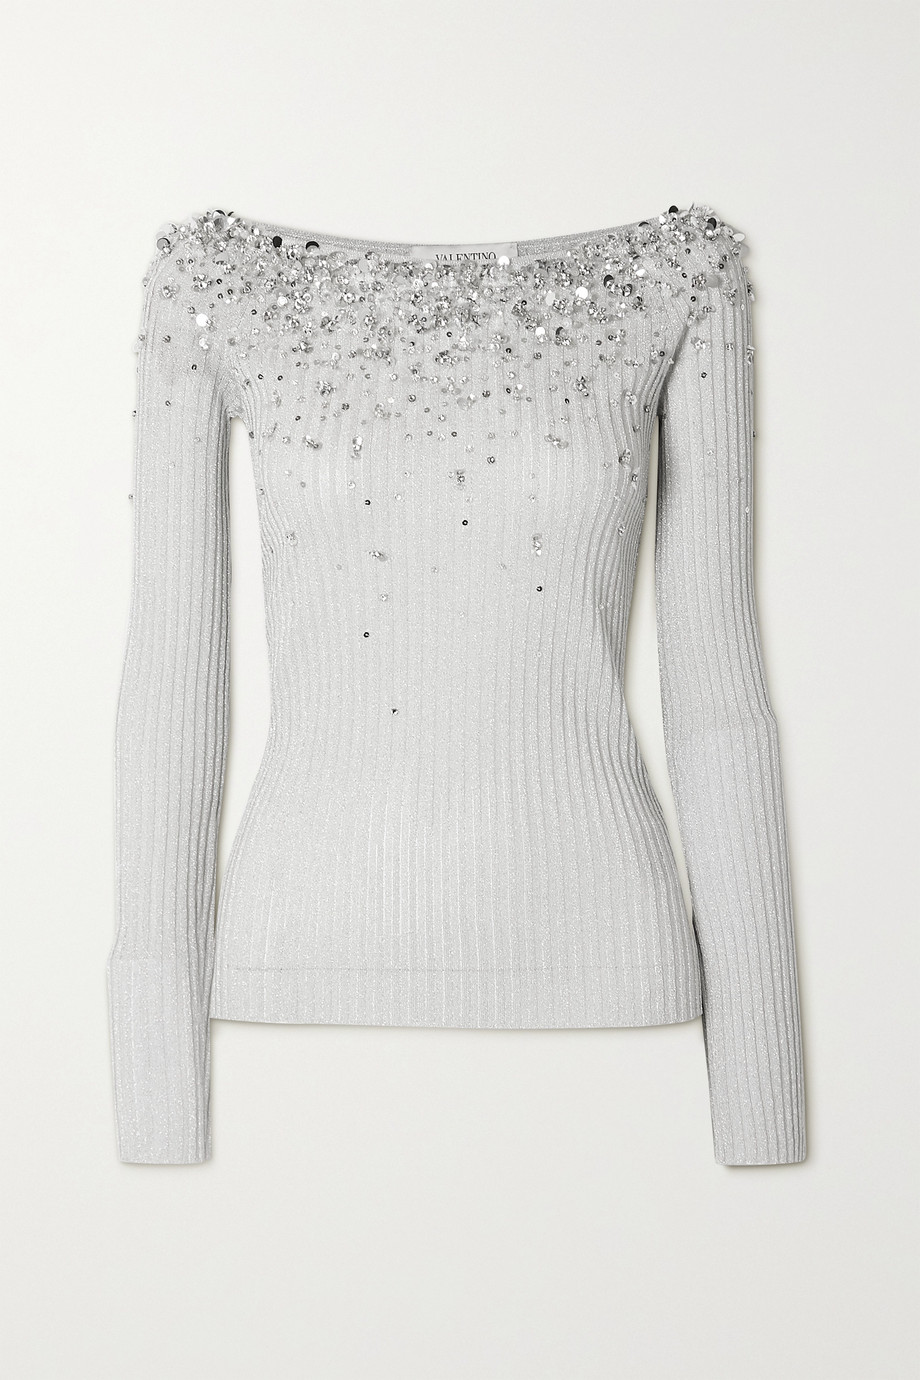 VALENTINO Off-the-shoulder embellished metallic ribbed-knit top